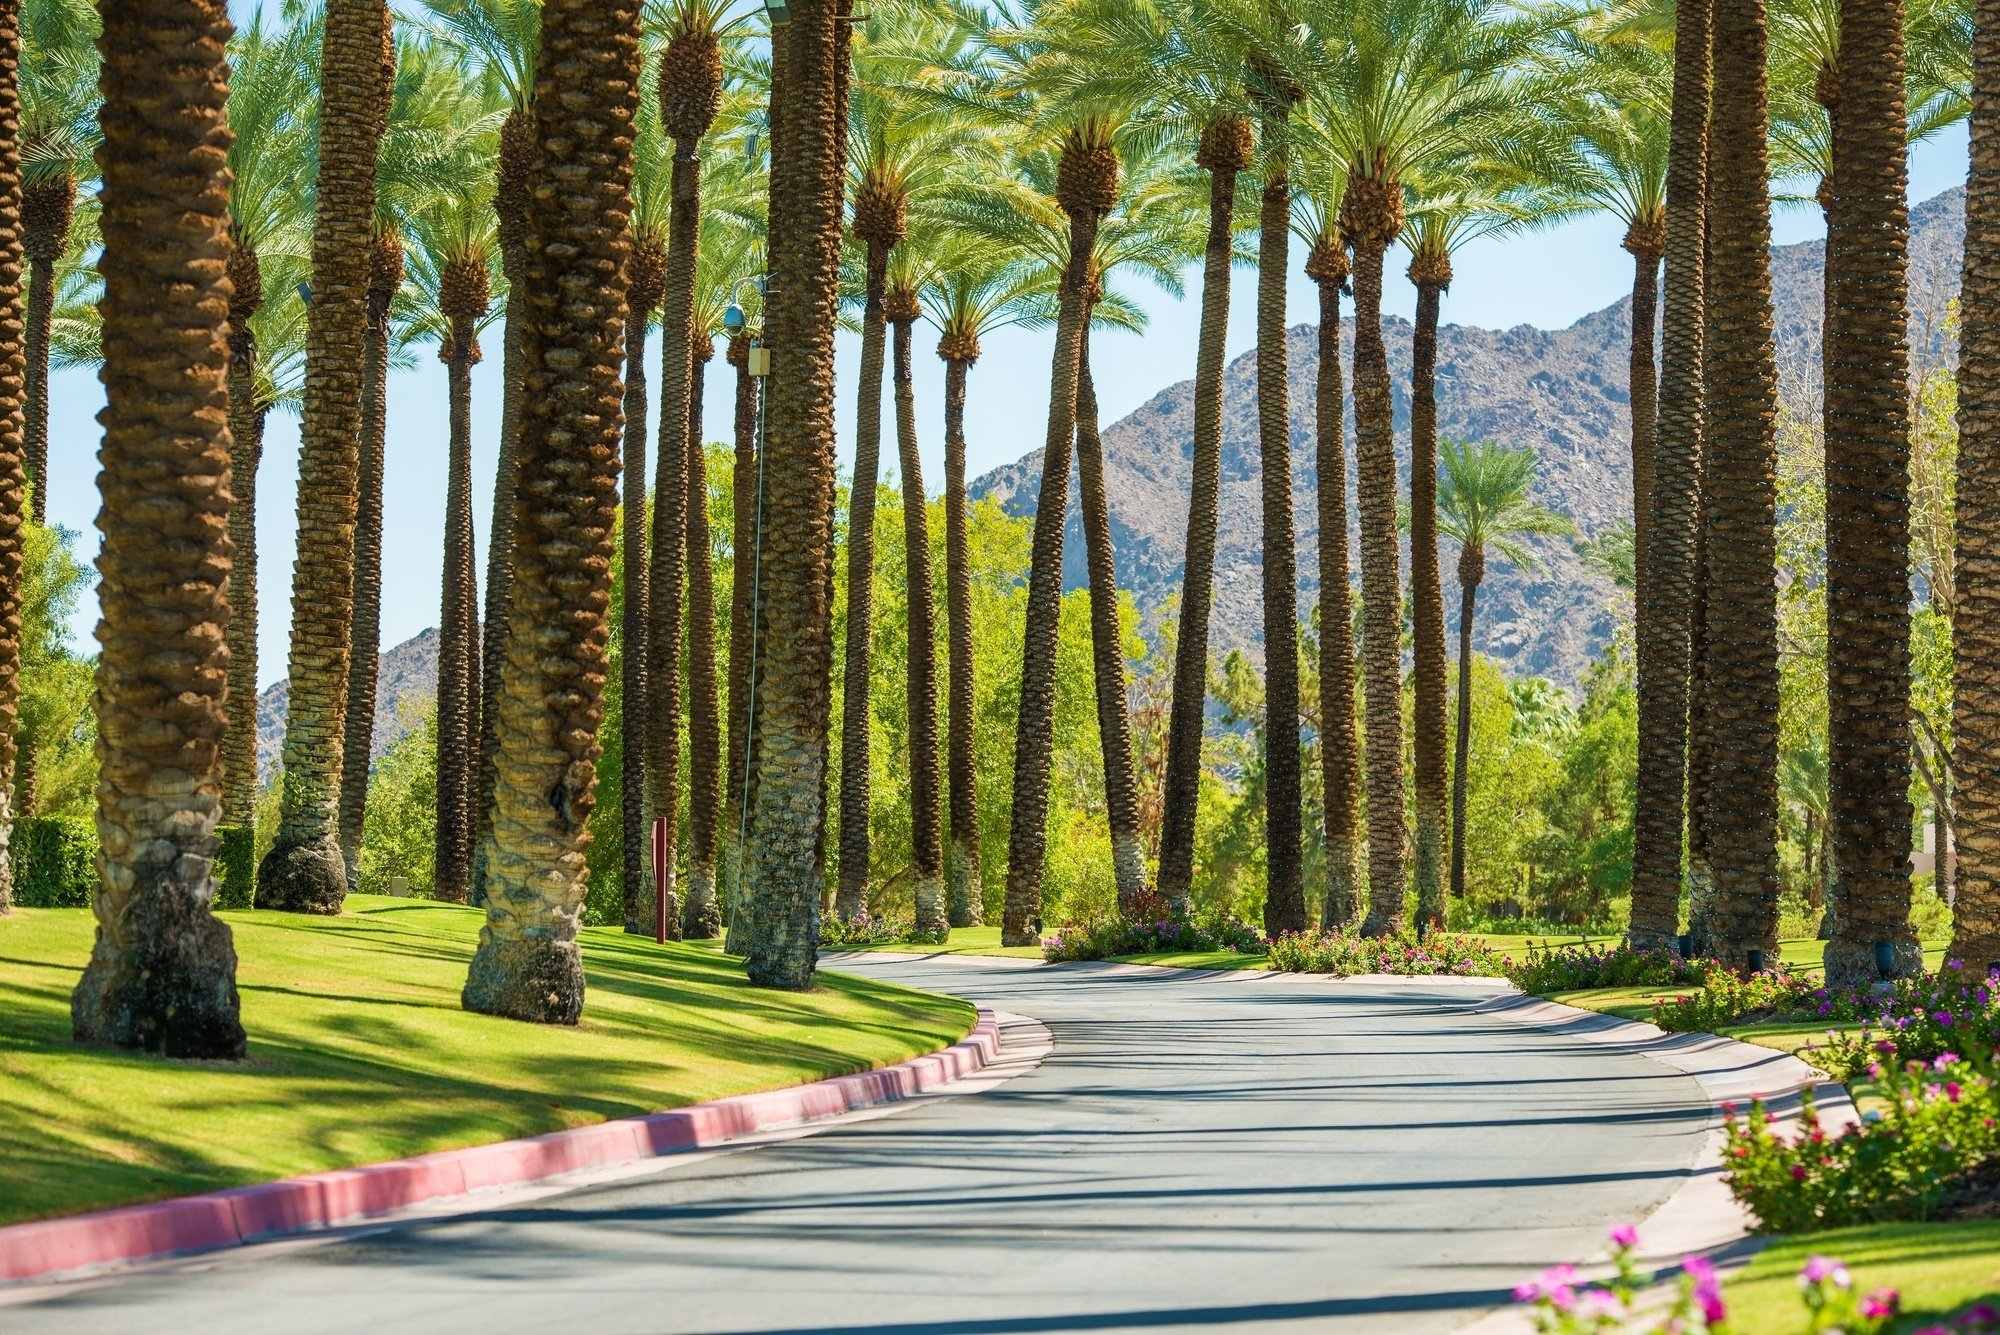 Iconic palm trees in Palm Springs, CA